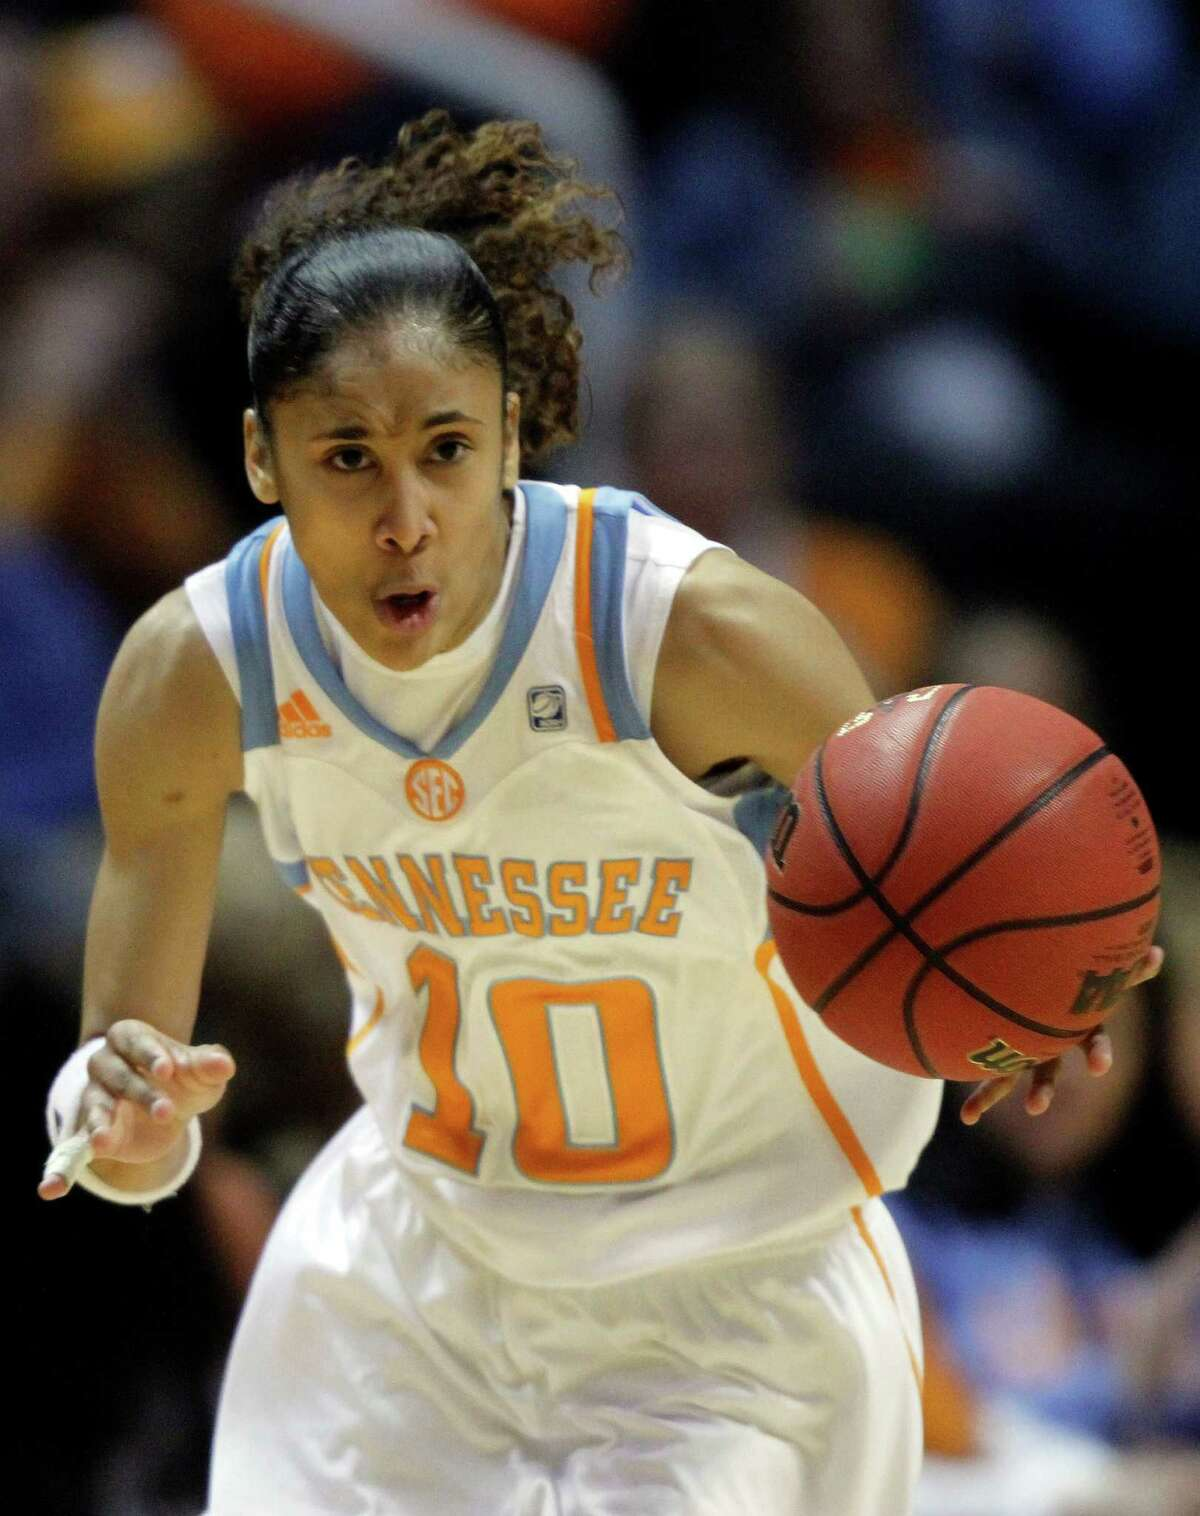 Tennessee's Meighan Simmons (10) brings the ball up court in the first half of an NCAA women's college basketball game against Georgia on Thursday, Jan. 5, 2012, in Knoxville, Tenn. Tennessee won 80-51.